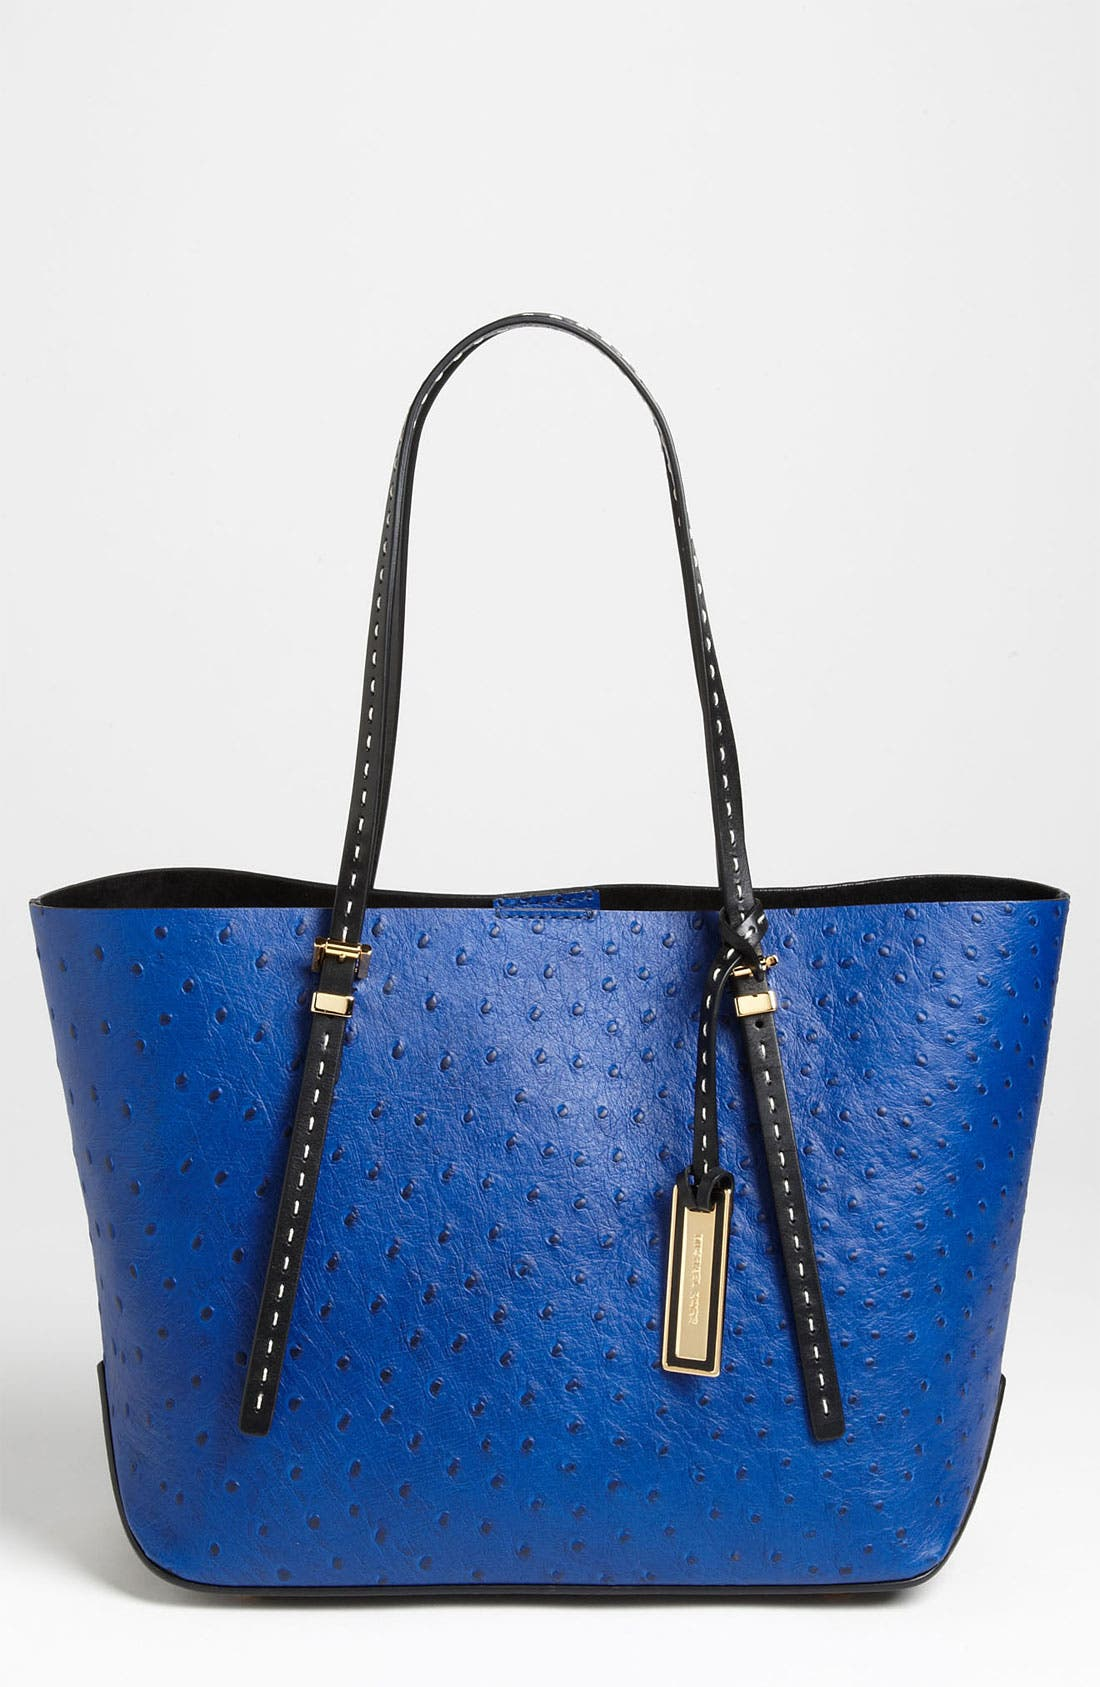 Alternate Image 1 Selected - Michael Kors 'Gia - Small' Ostrich Embossed Leather Tote